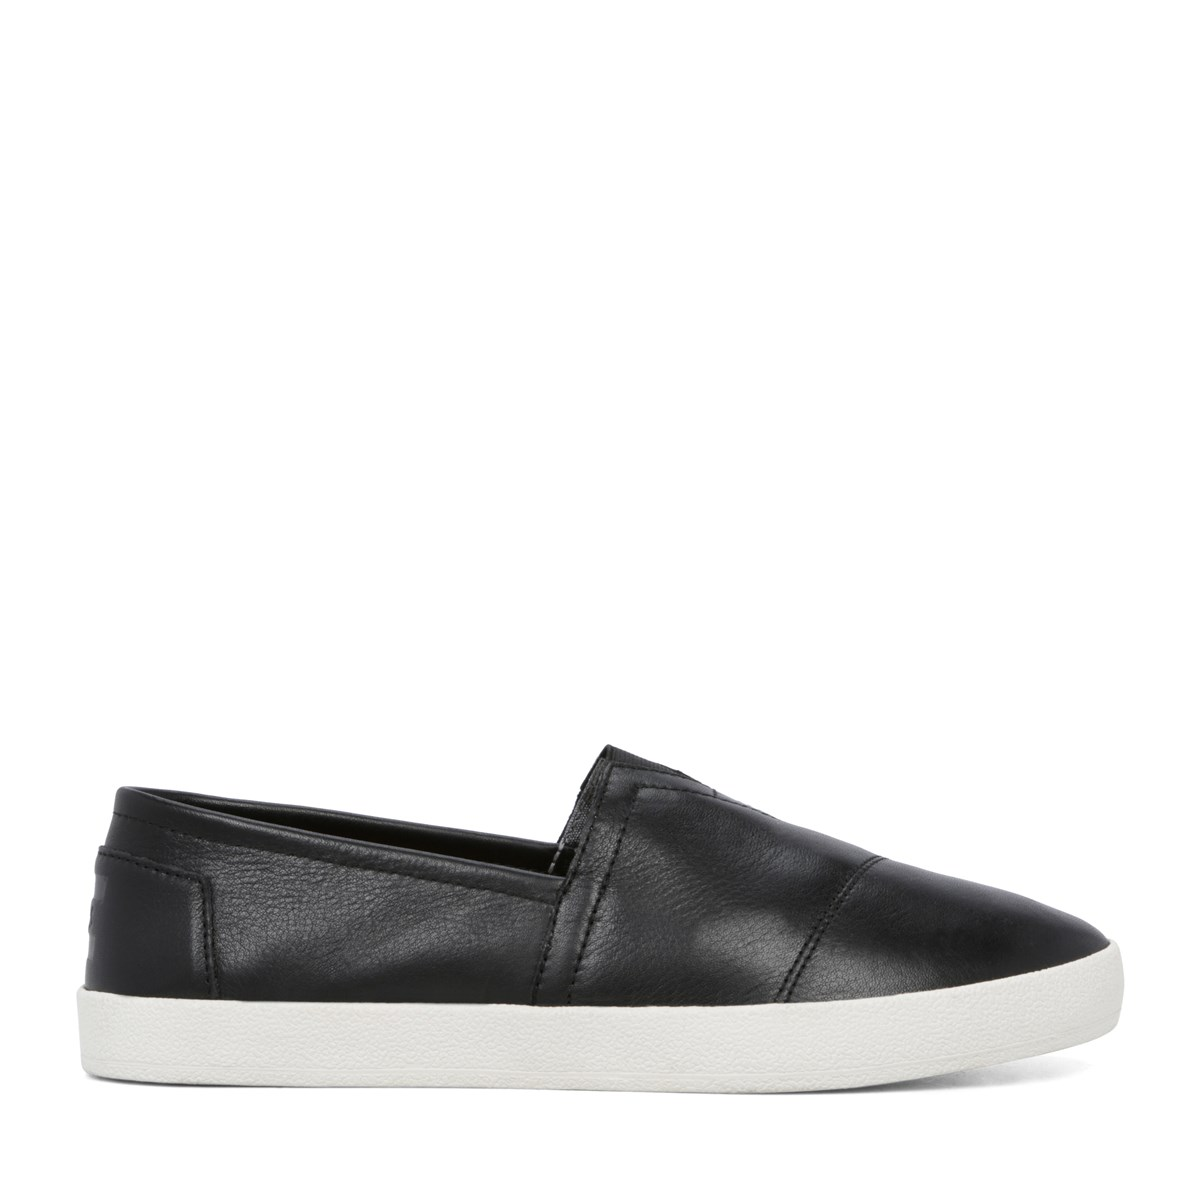 Women's Avalon Slip-on Black Leather